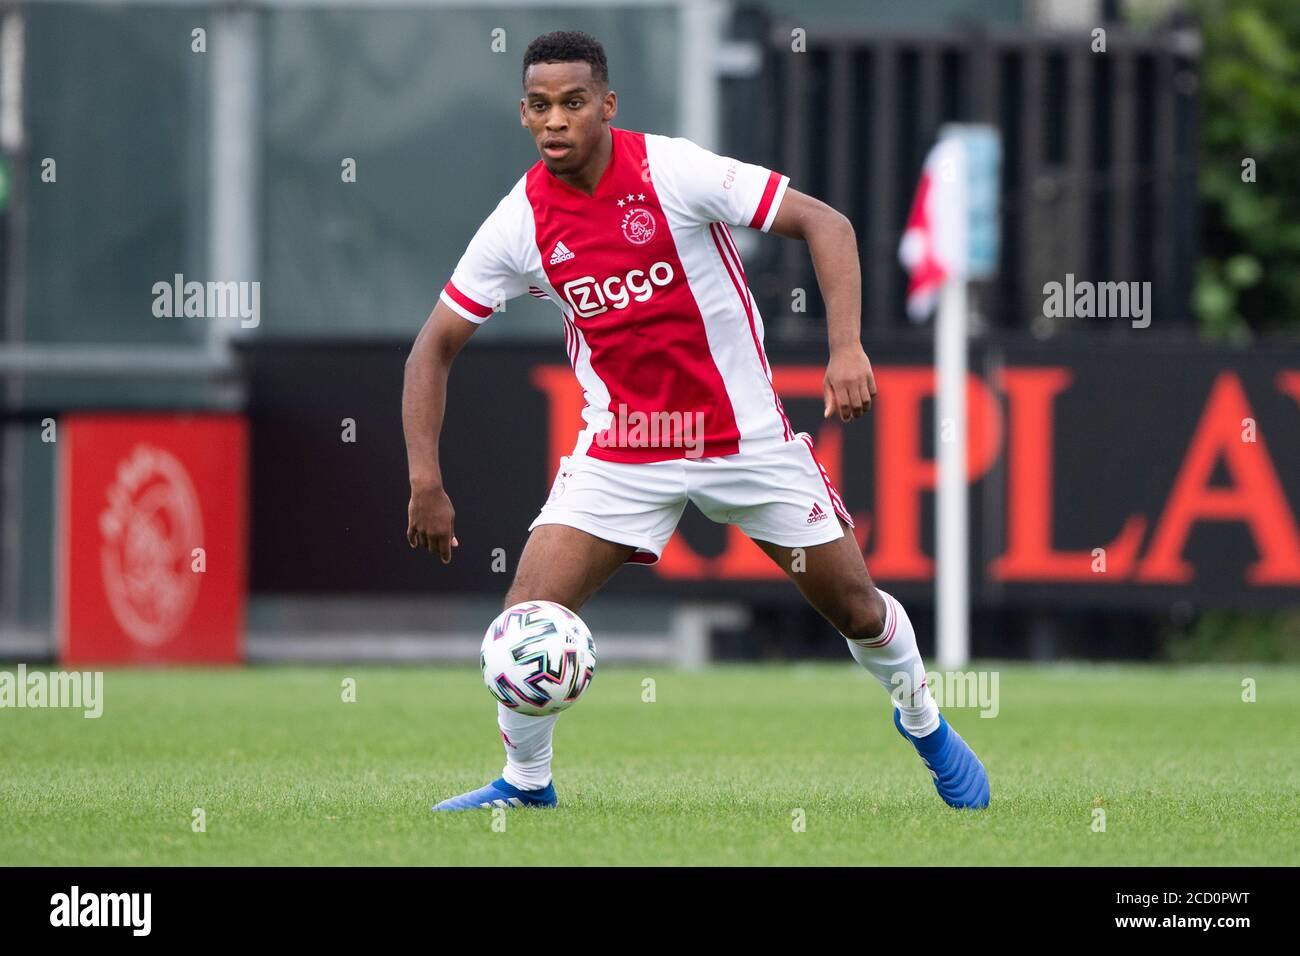 Amsterdam 25 08 2020 Sportpark De Toekomst Football Friendly Testmatch Season 2020 2021 Ajax Holstein Kiel Ajax Player Jurien Timber Stock Photo Alamy